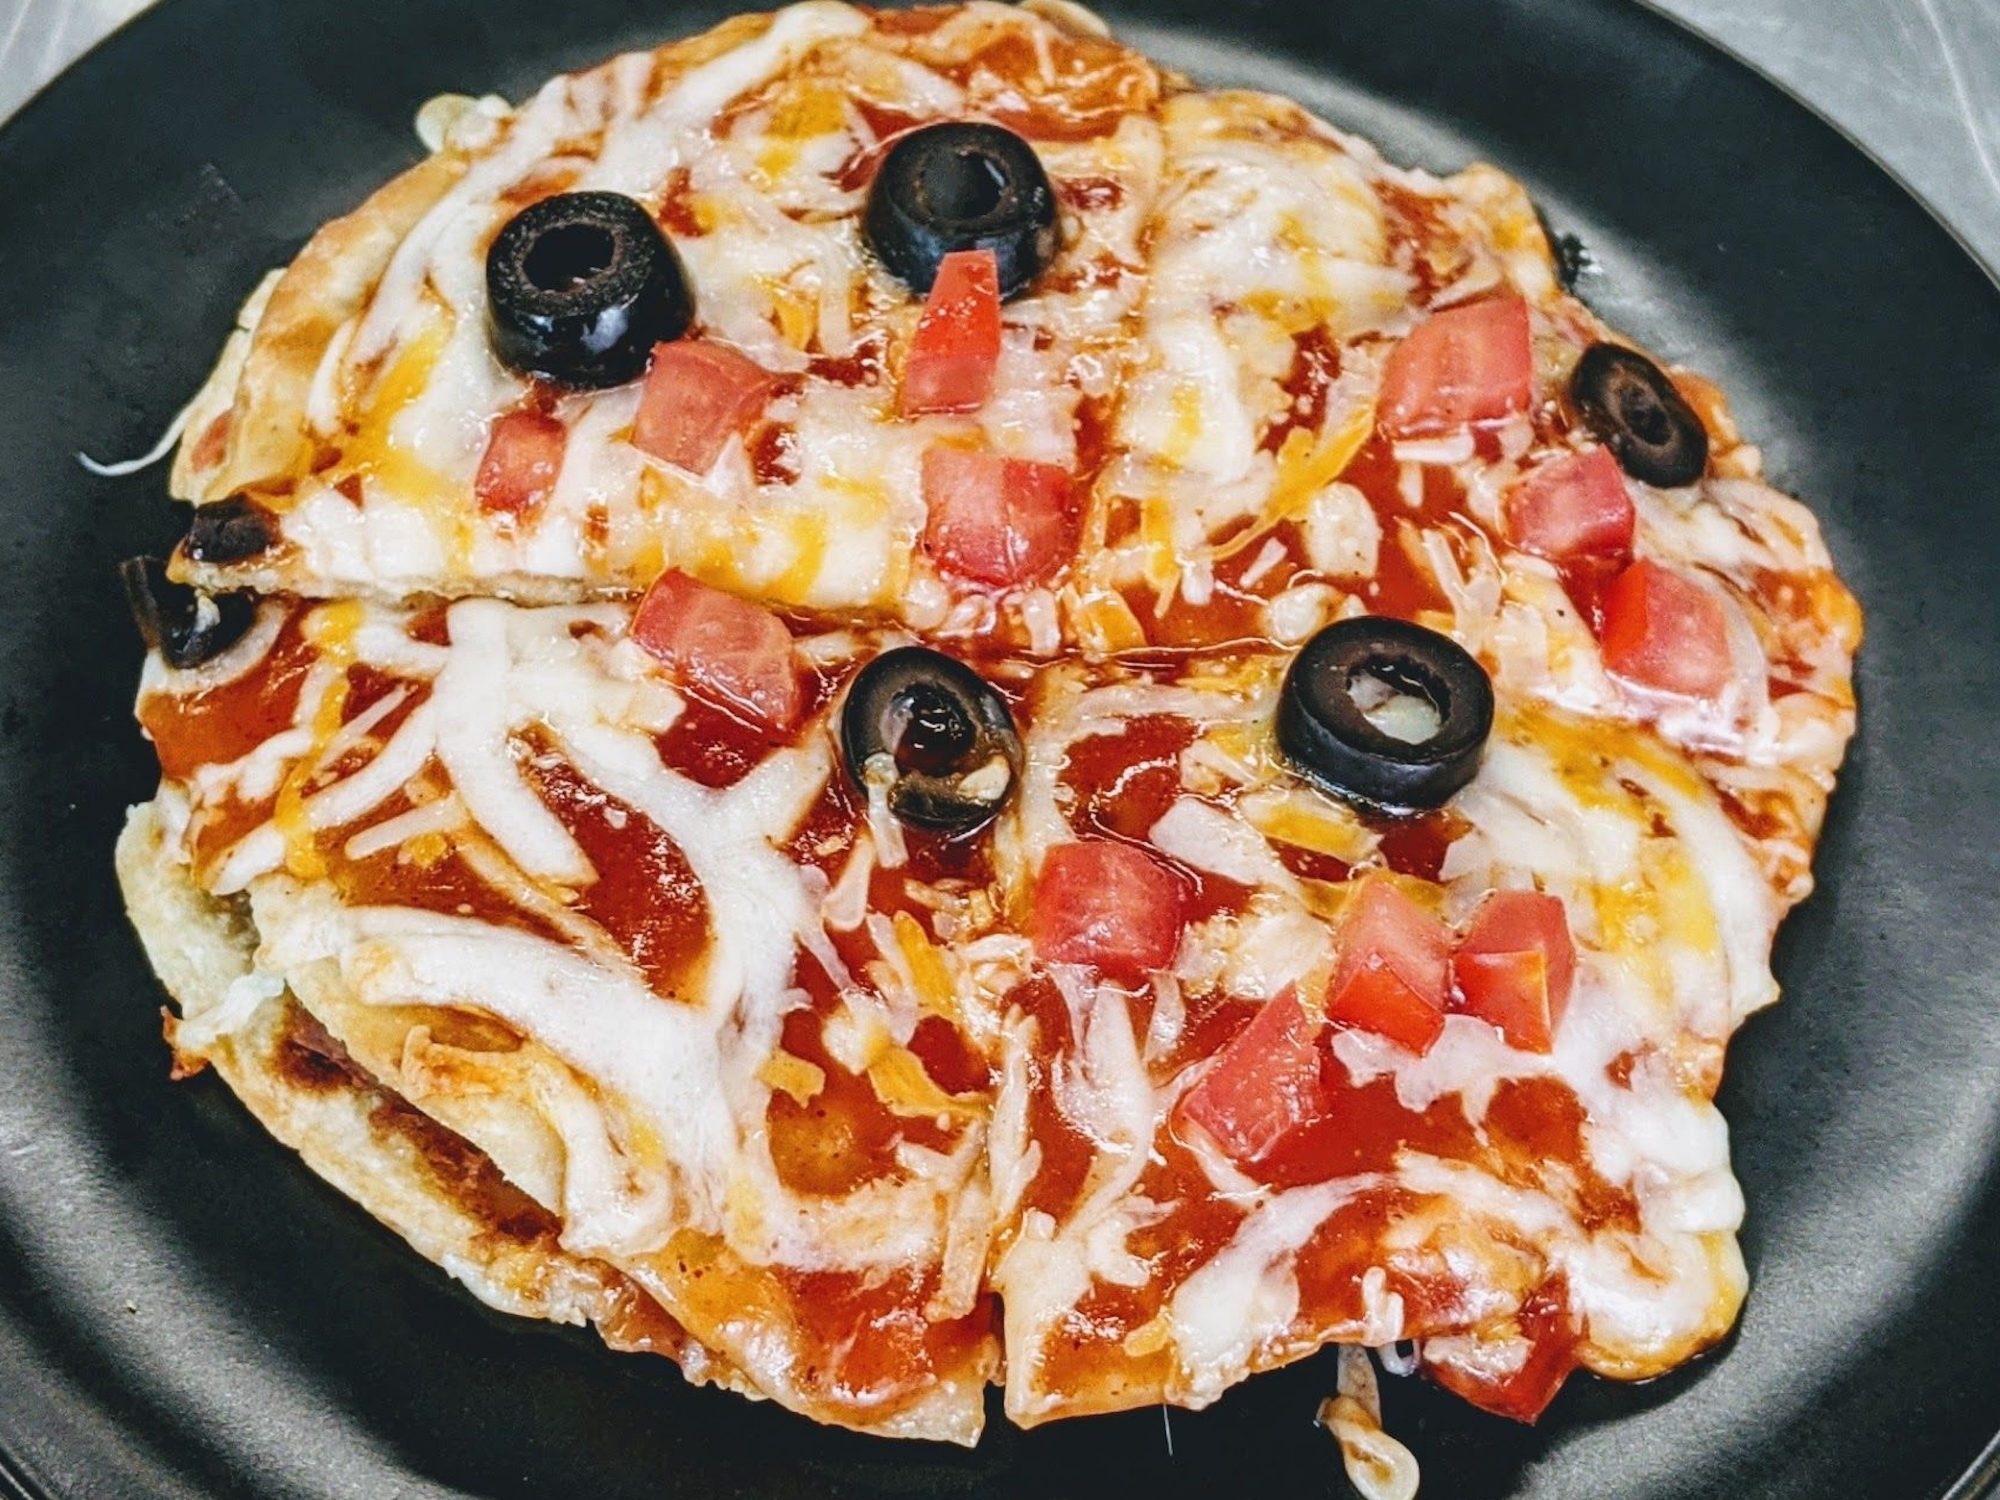 wd - Copycat Taco Bell Mexican Pizza Image